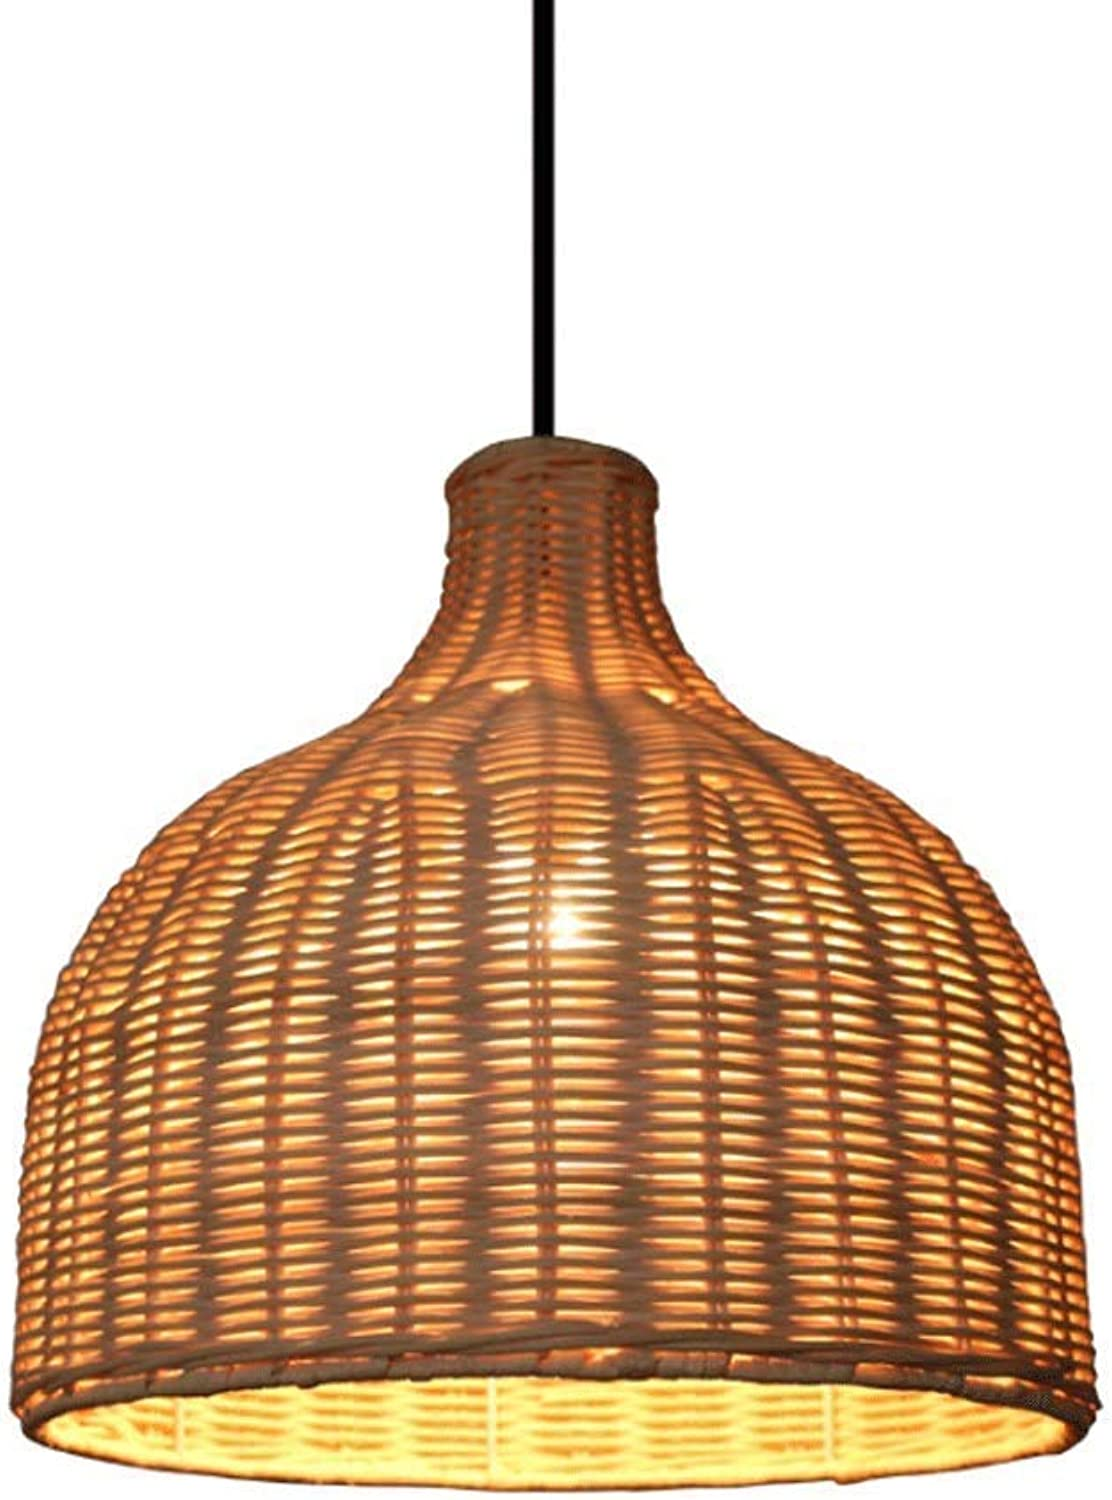 X-DENG Wicker Rattan Woven Lamp, Bambus Kronleuchter Retro Wicker Lamp Kronleuchter Restaurant Tea Room Deckenleuchte Bauernhaus Kronleuchter (Größe   9.8inch)